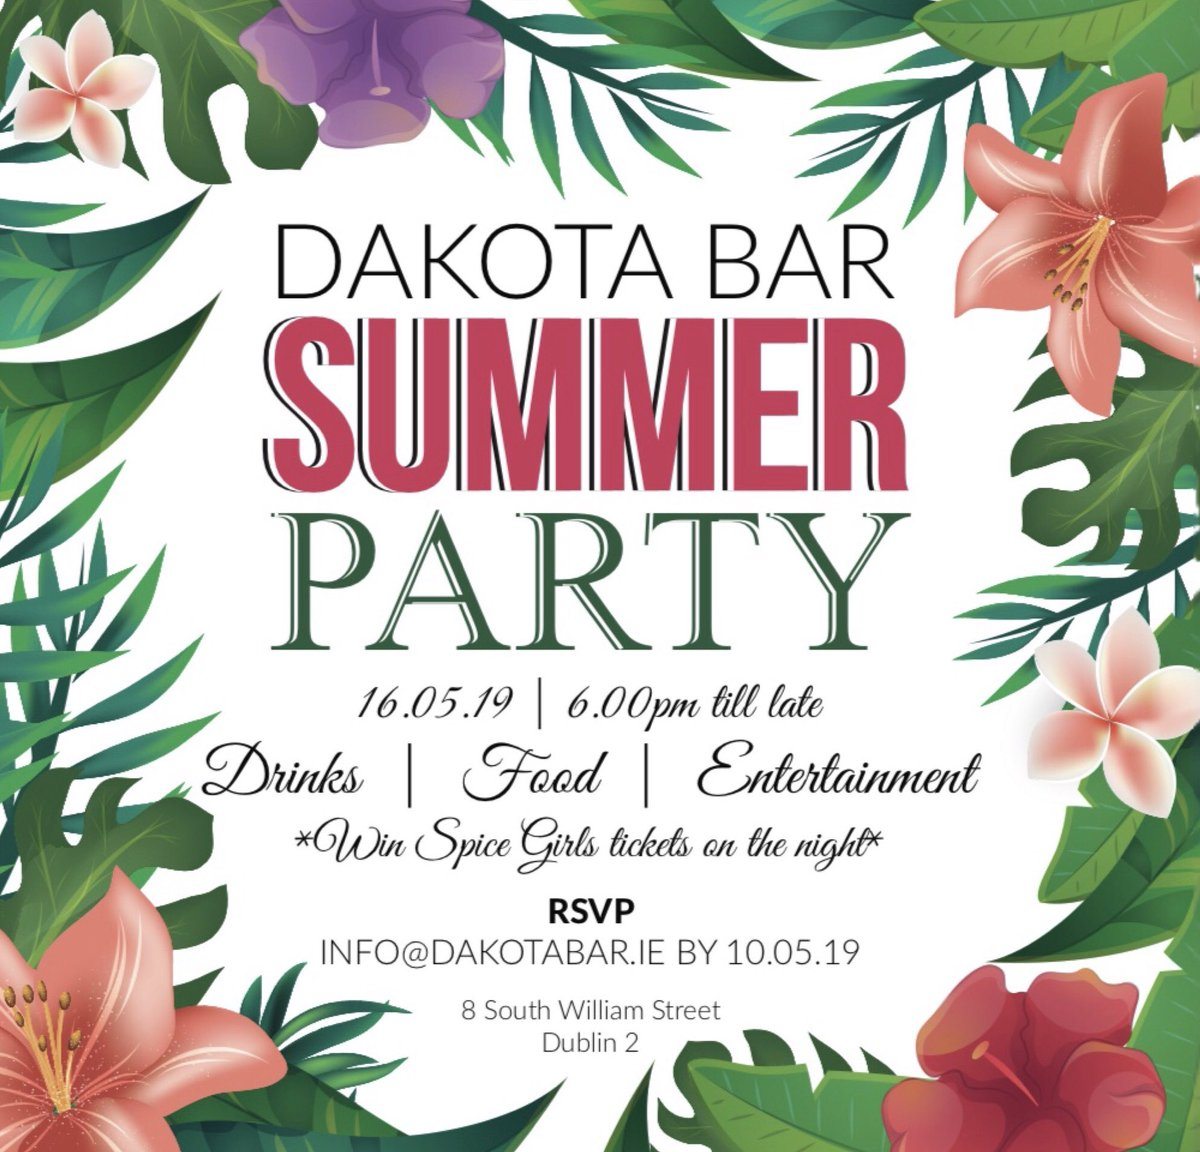 As you may aware - Dakota Bar has been closed for the last few months for some exciting refurb work! We are very excited to reopen this month and are throwing one serious party to celebrate!  We have a limited number of guest list places available - get in touch to avail! 🙌🏻 https://t.co/BTxS6KXO9g